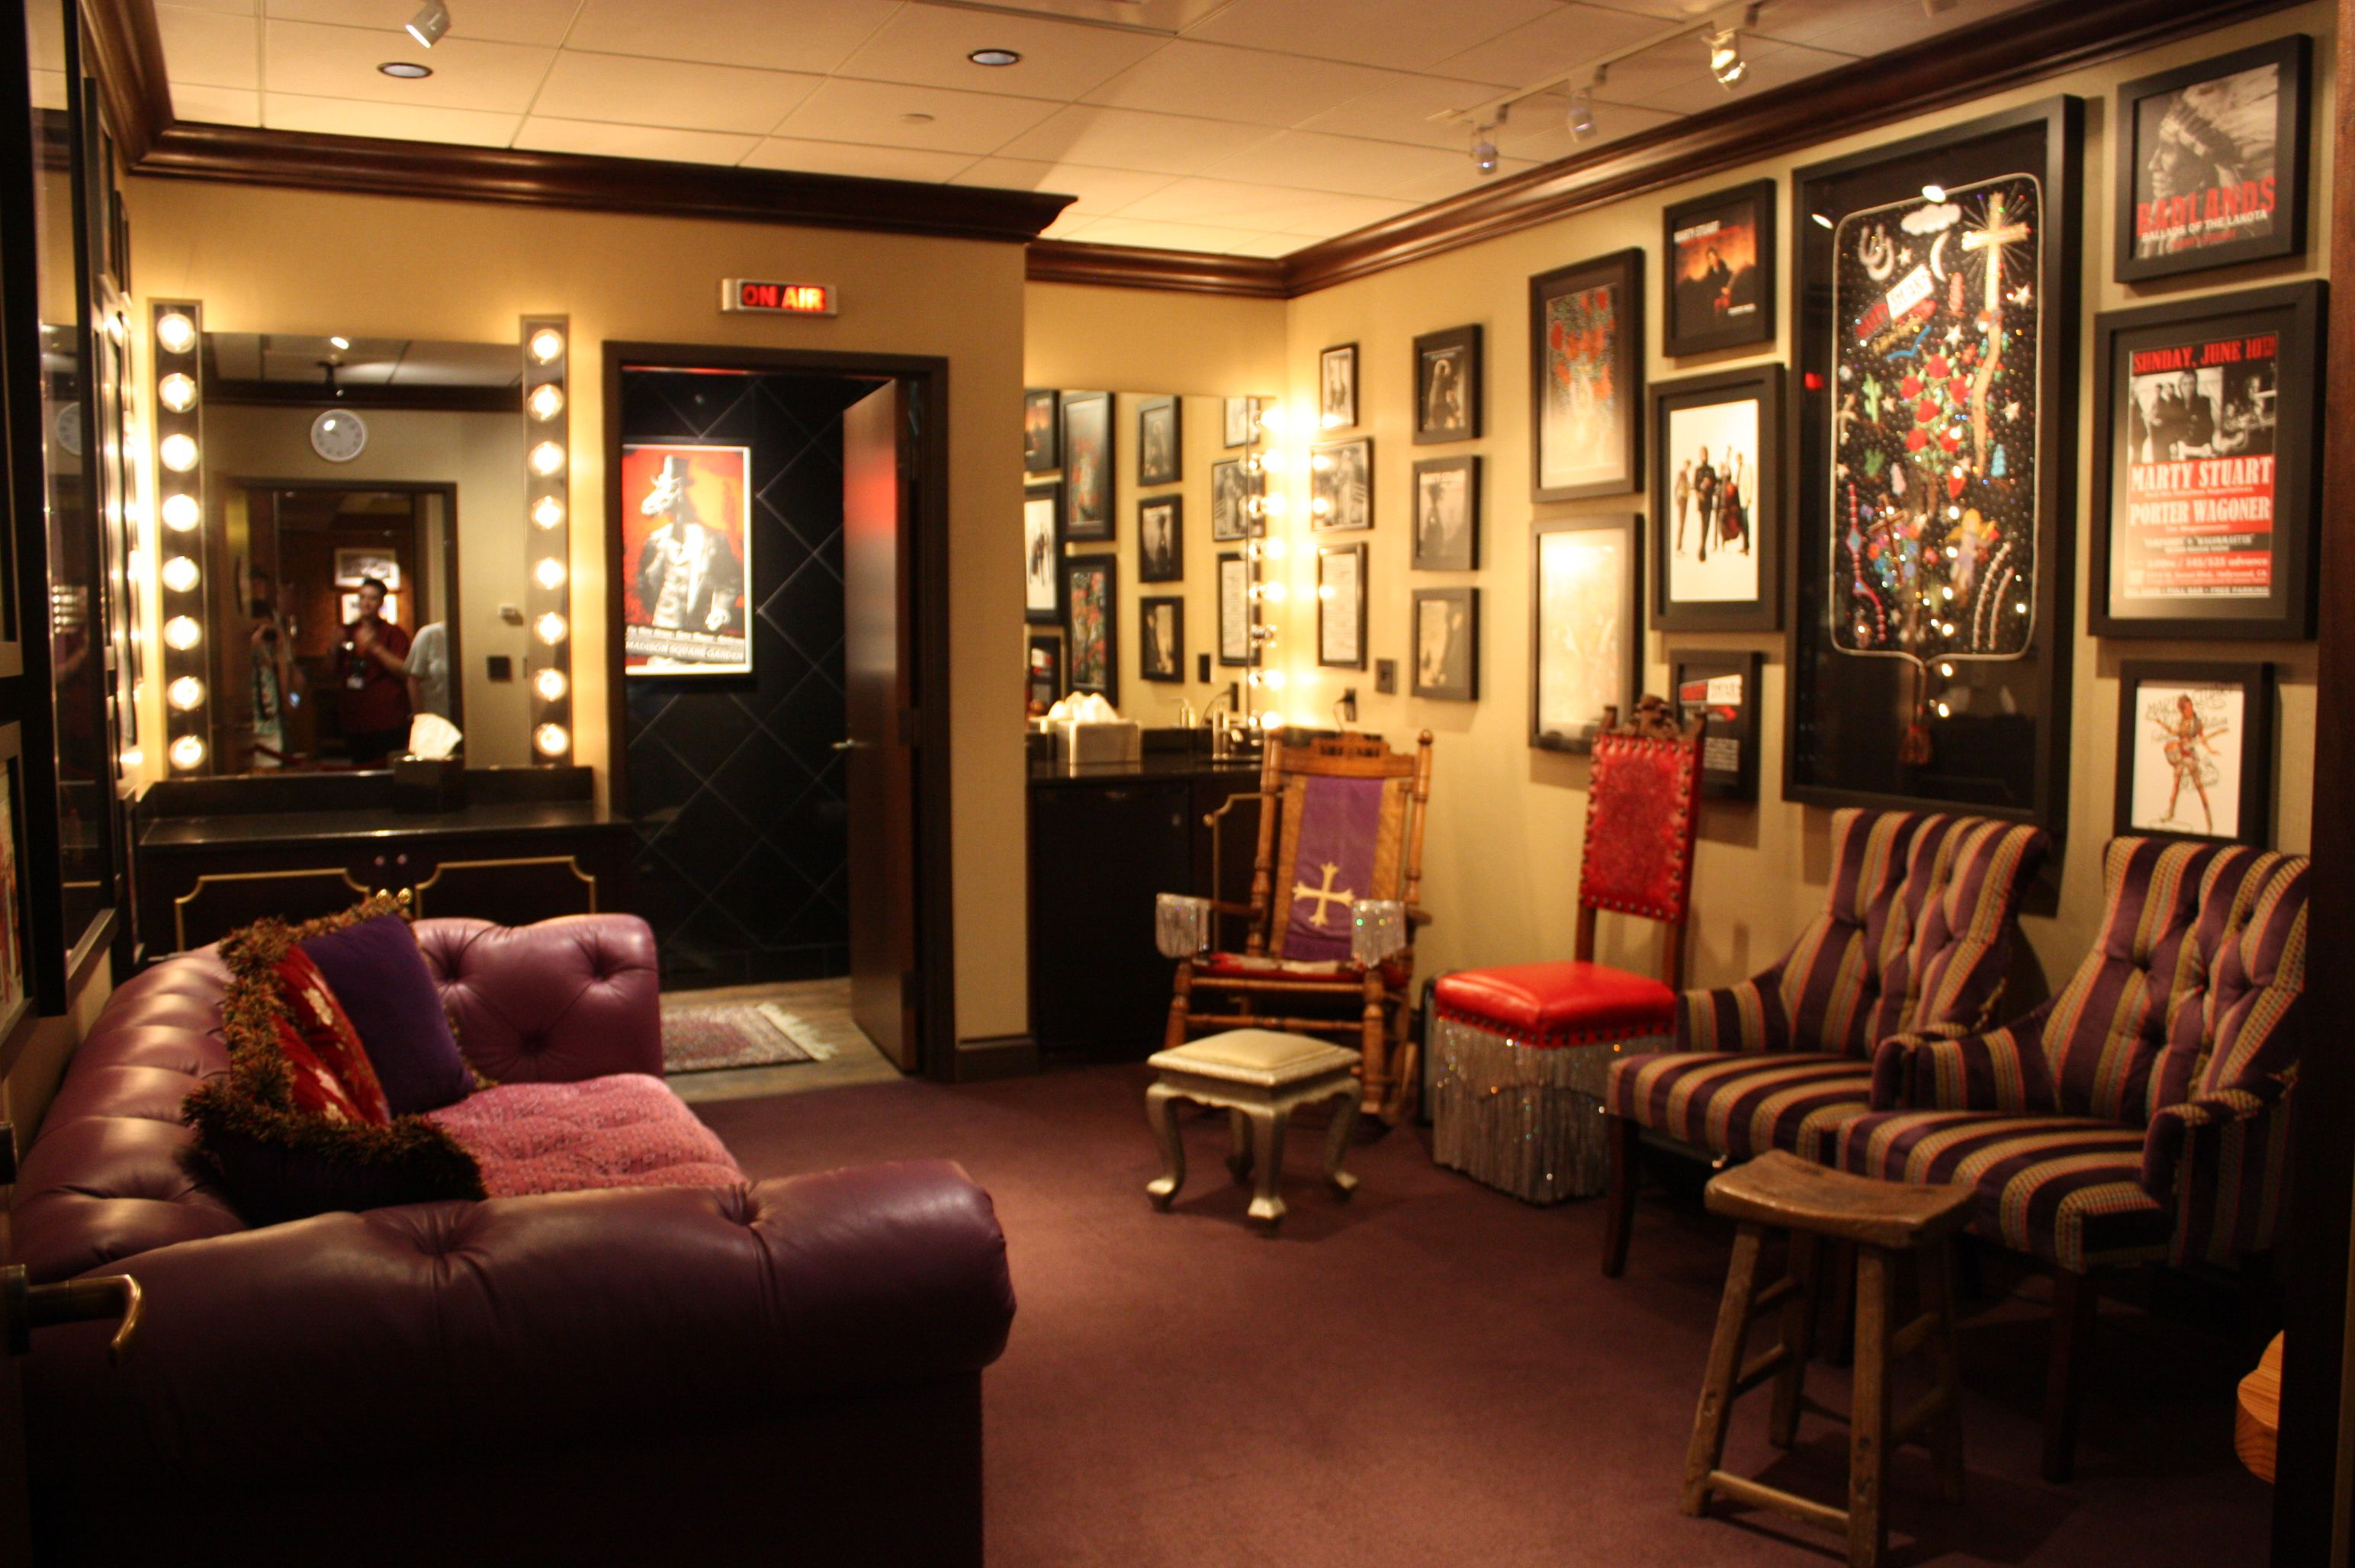 Backstage Dressing Rooms Bing Images GCC Green Room